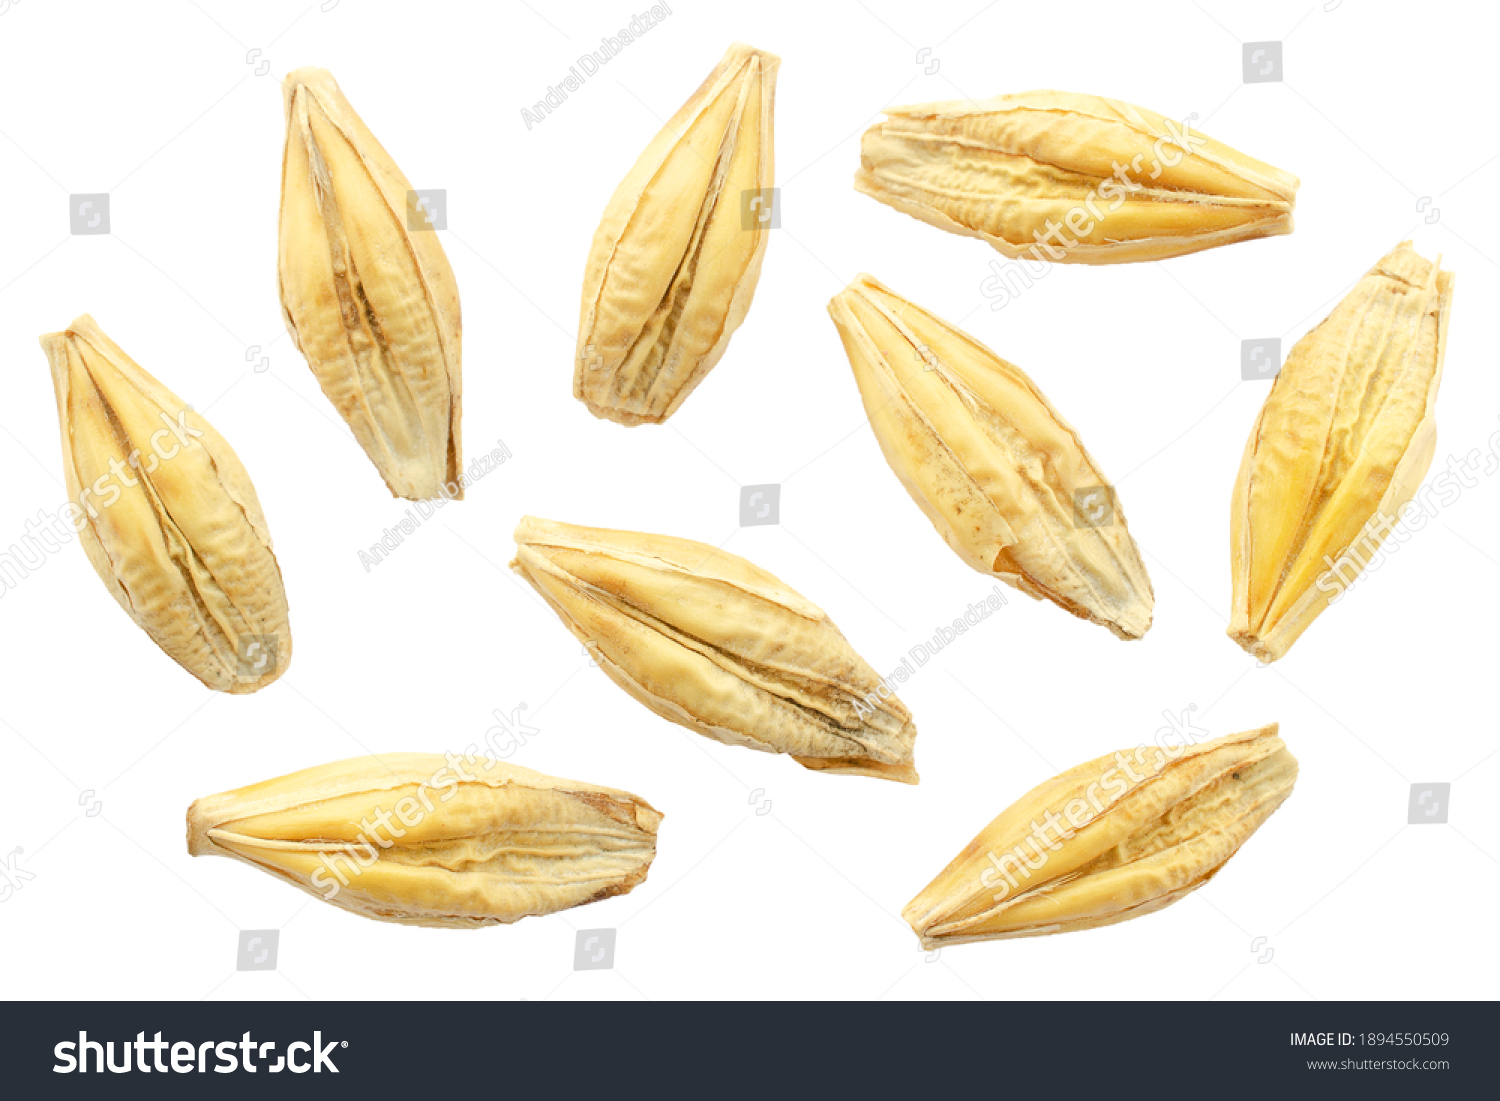 Barley seeds are isolated on white, top view, macro. Barley seeds isolated on a white background. Grains of barley malt on a white background. Set of barley grains isolated on white background. #1894550509